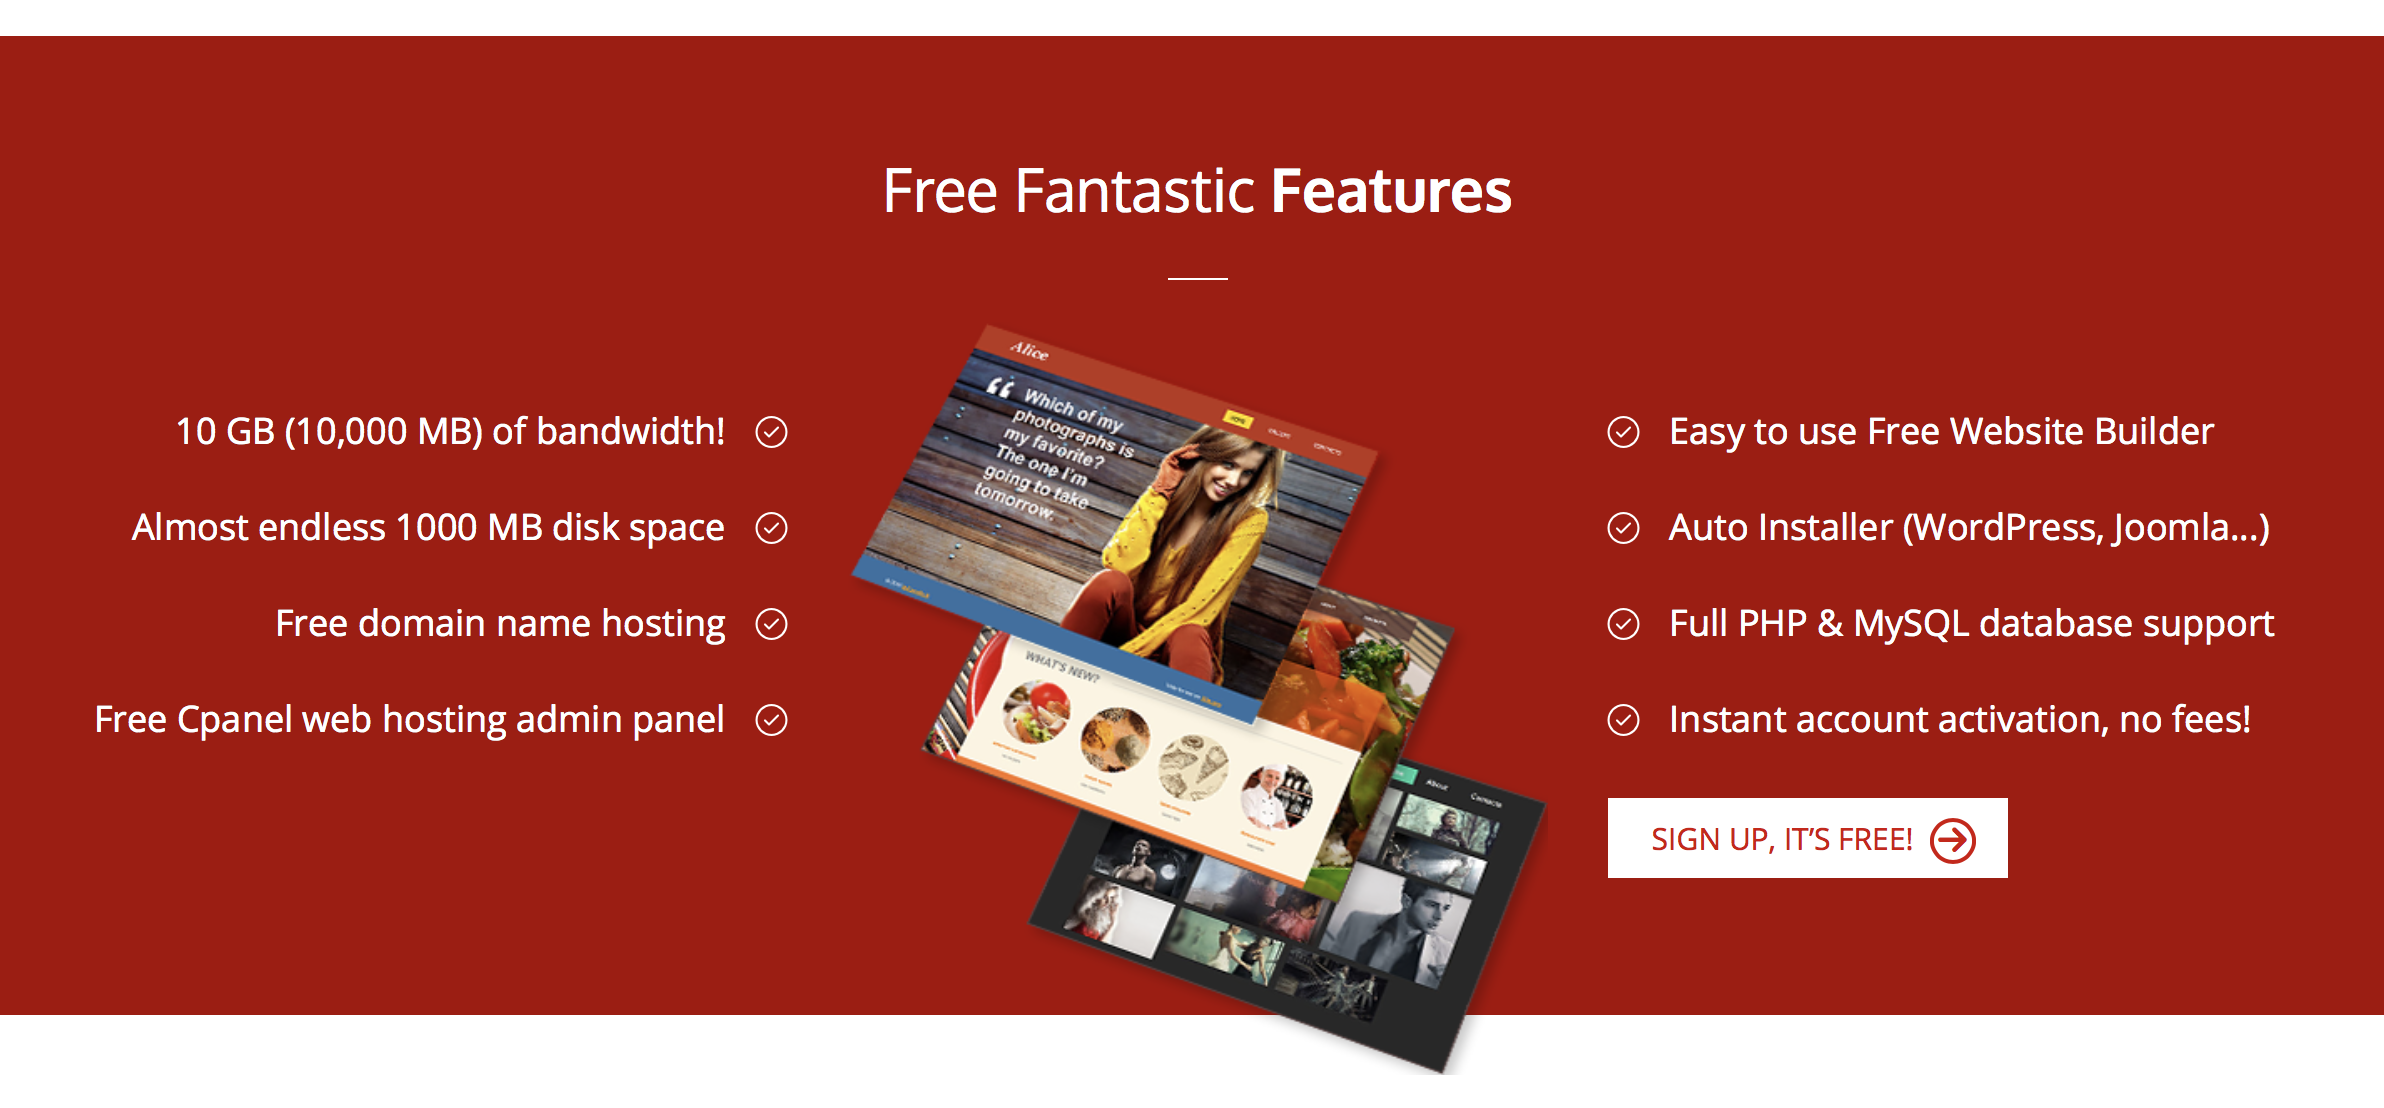 000Webhost Free Fantastic Features